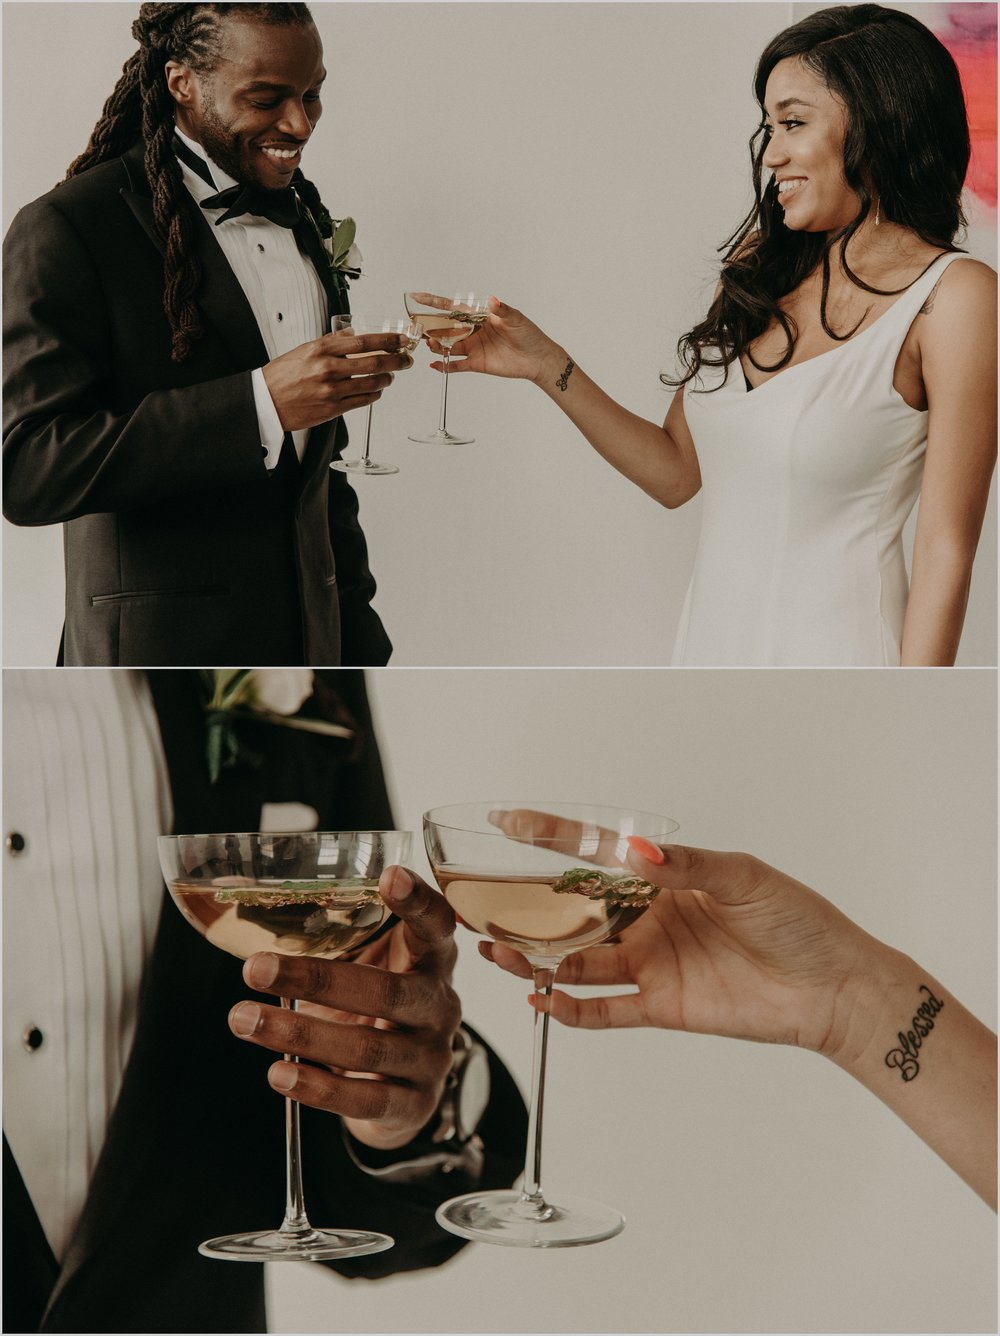 Bride and groom toast each other #blessed